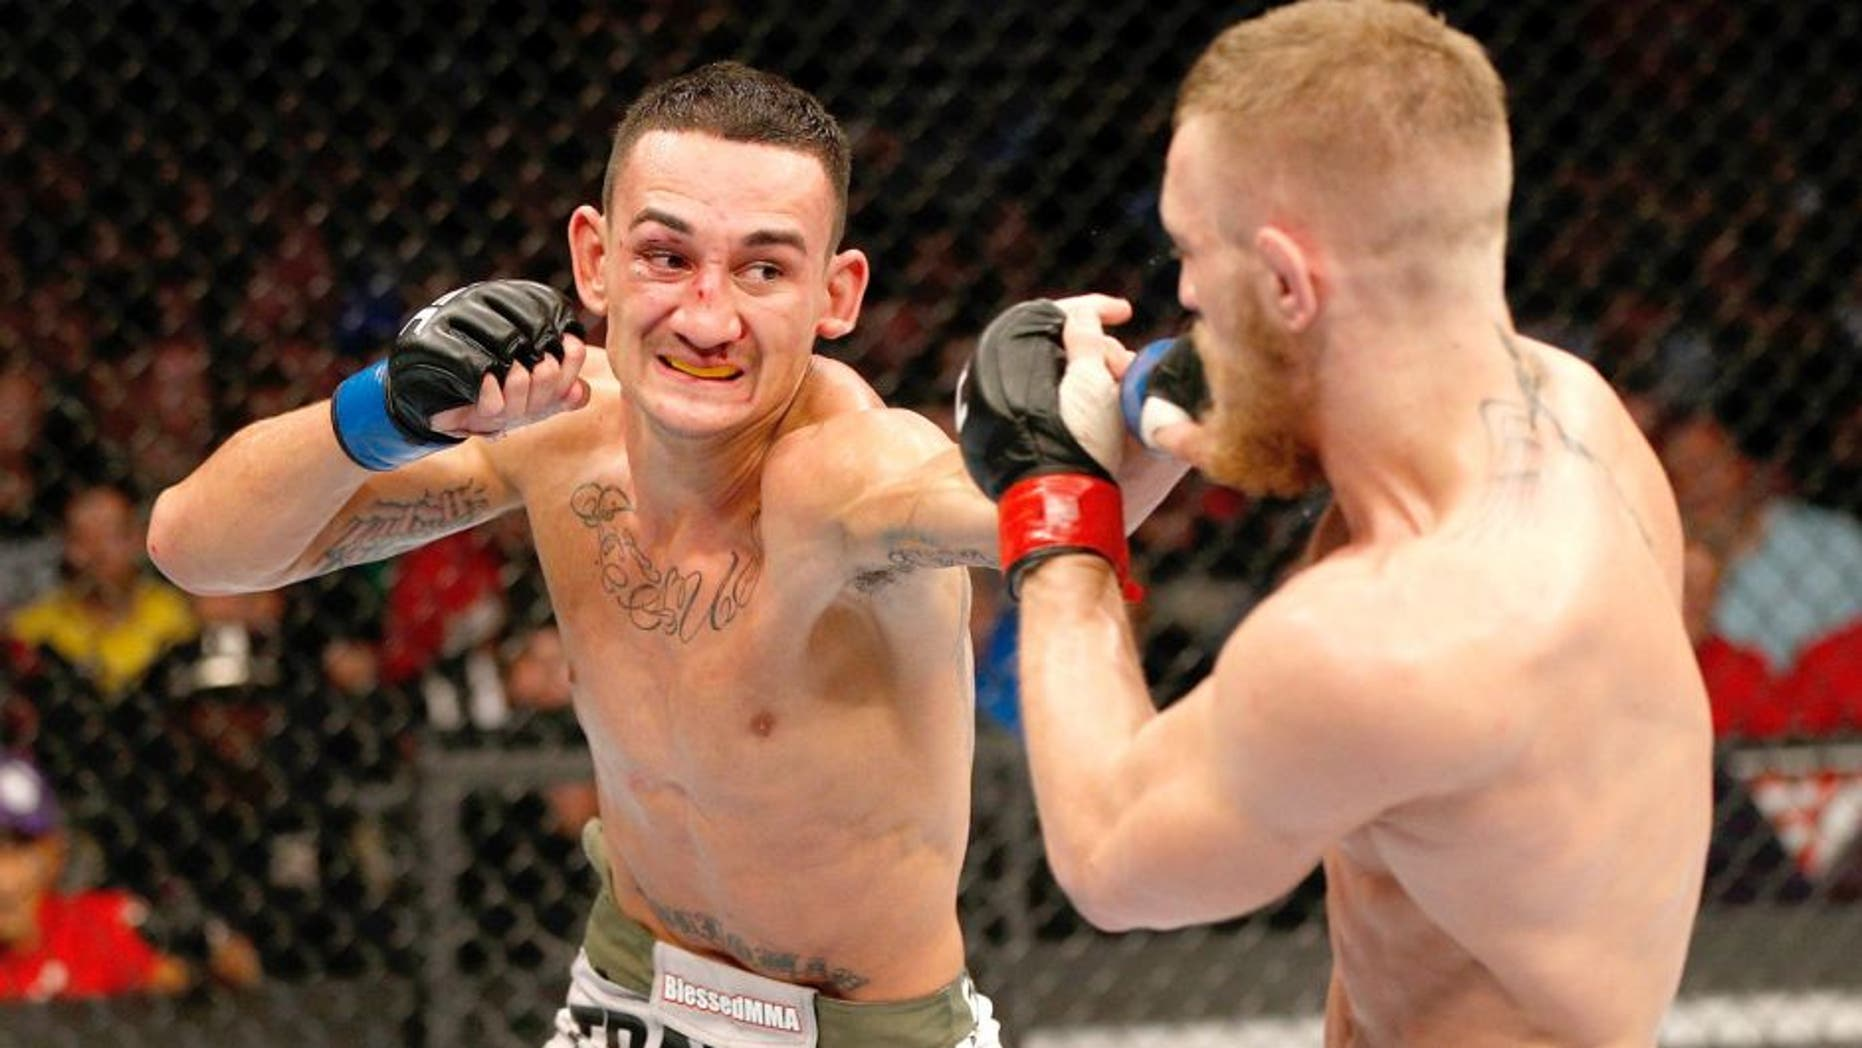 BOSTON, MA - AUGUST 17: (L-R) Max Holloway punches Conor McGregor in their UFC featherweight bout at TD Garden on August 17, 2013 in Boston, Massachusetts. (Photo by Josh Hedges/Zuffa LLC/Zuffa LLC via Getty Images)